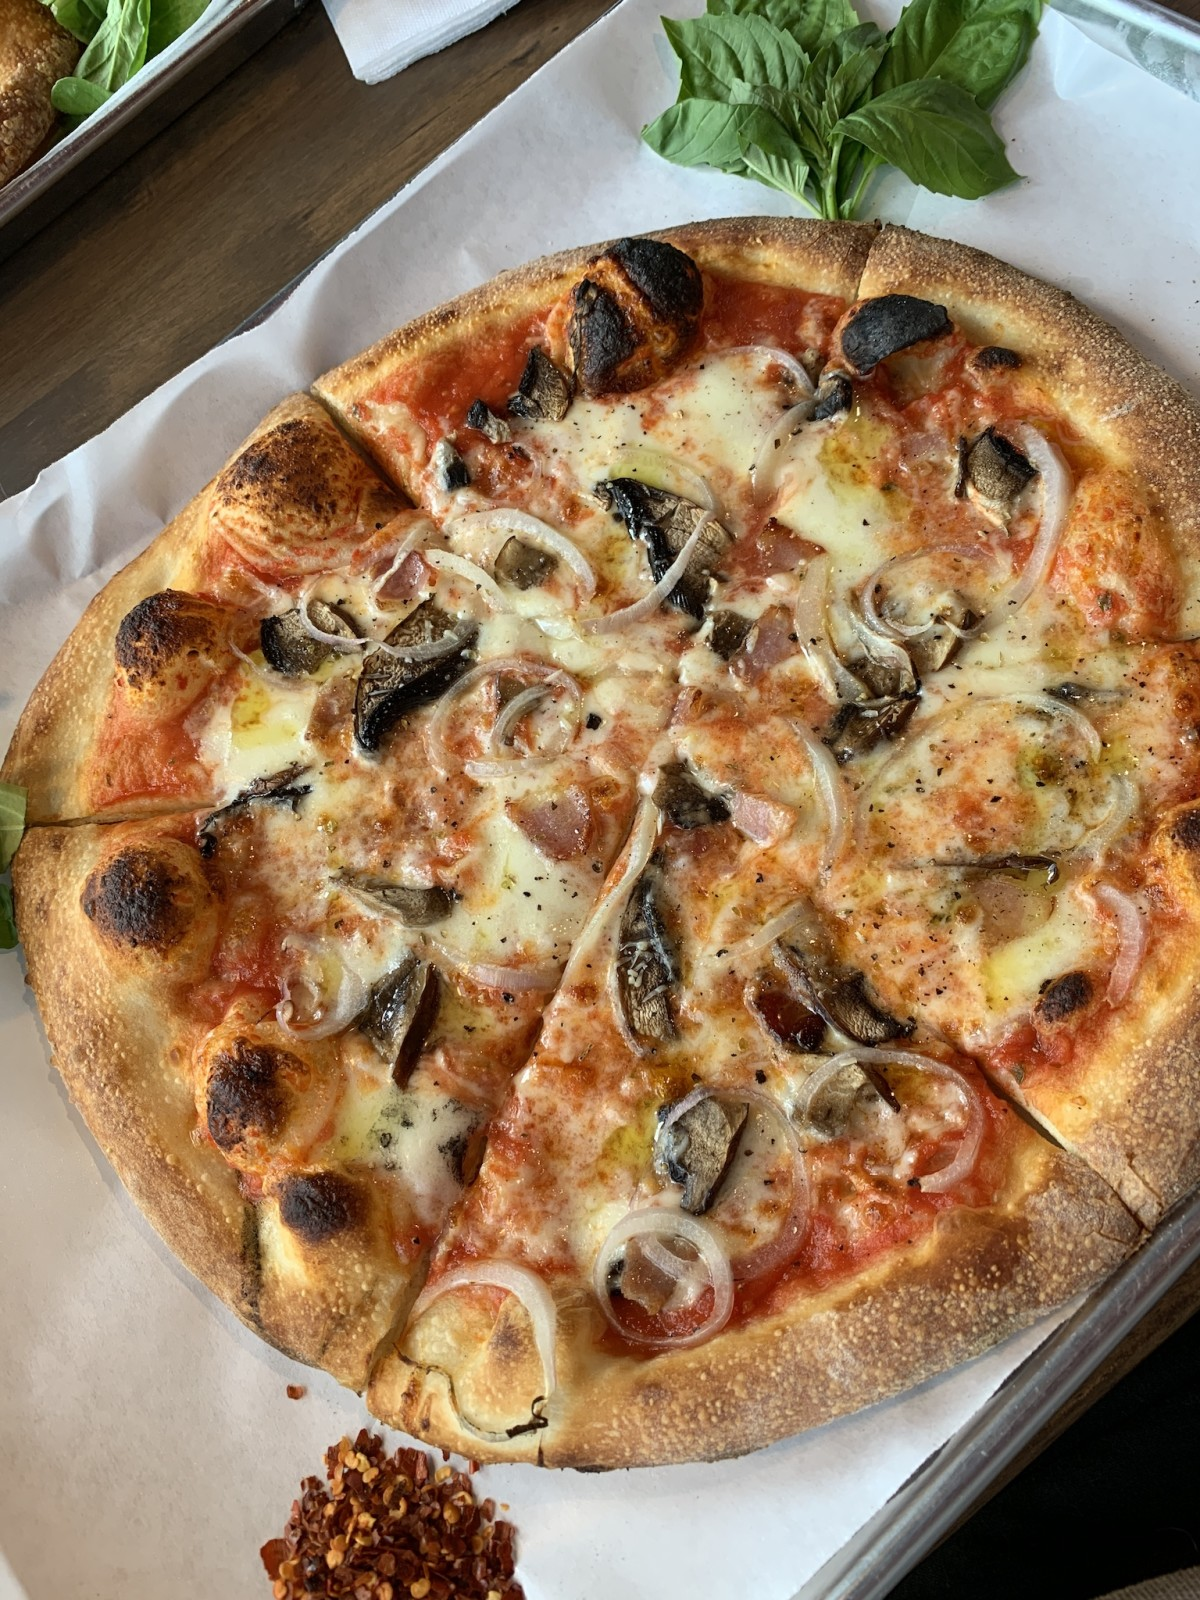 The Gypsy Poet mushroom pizza